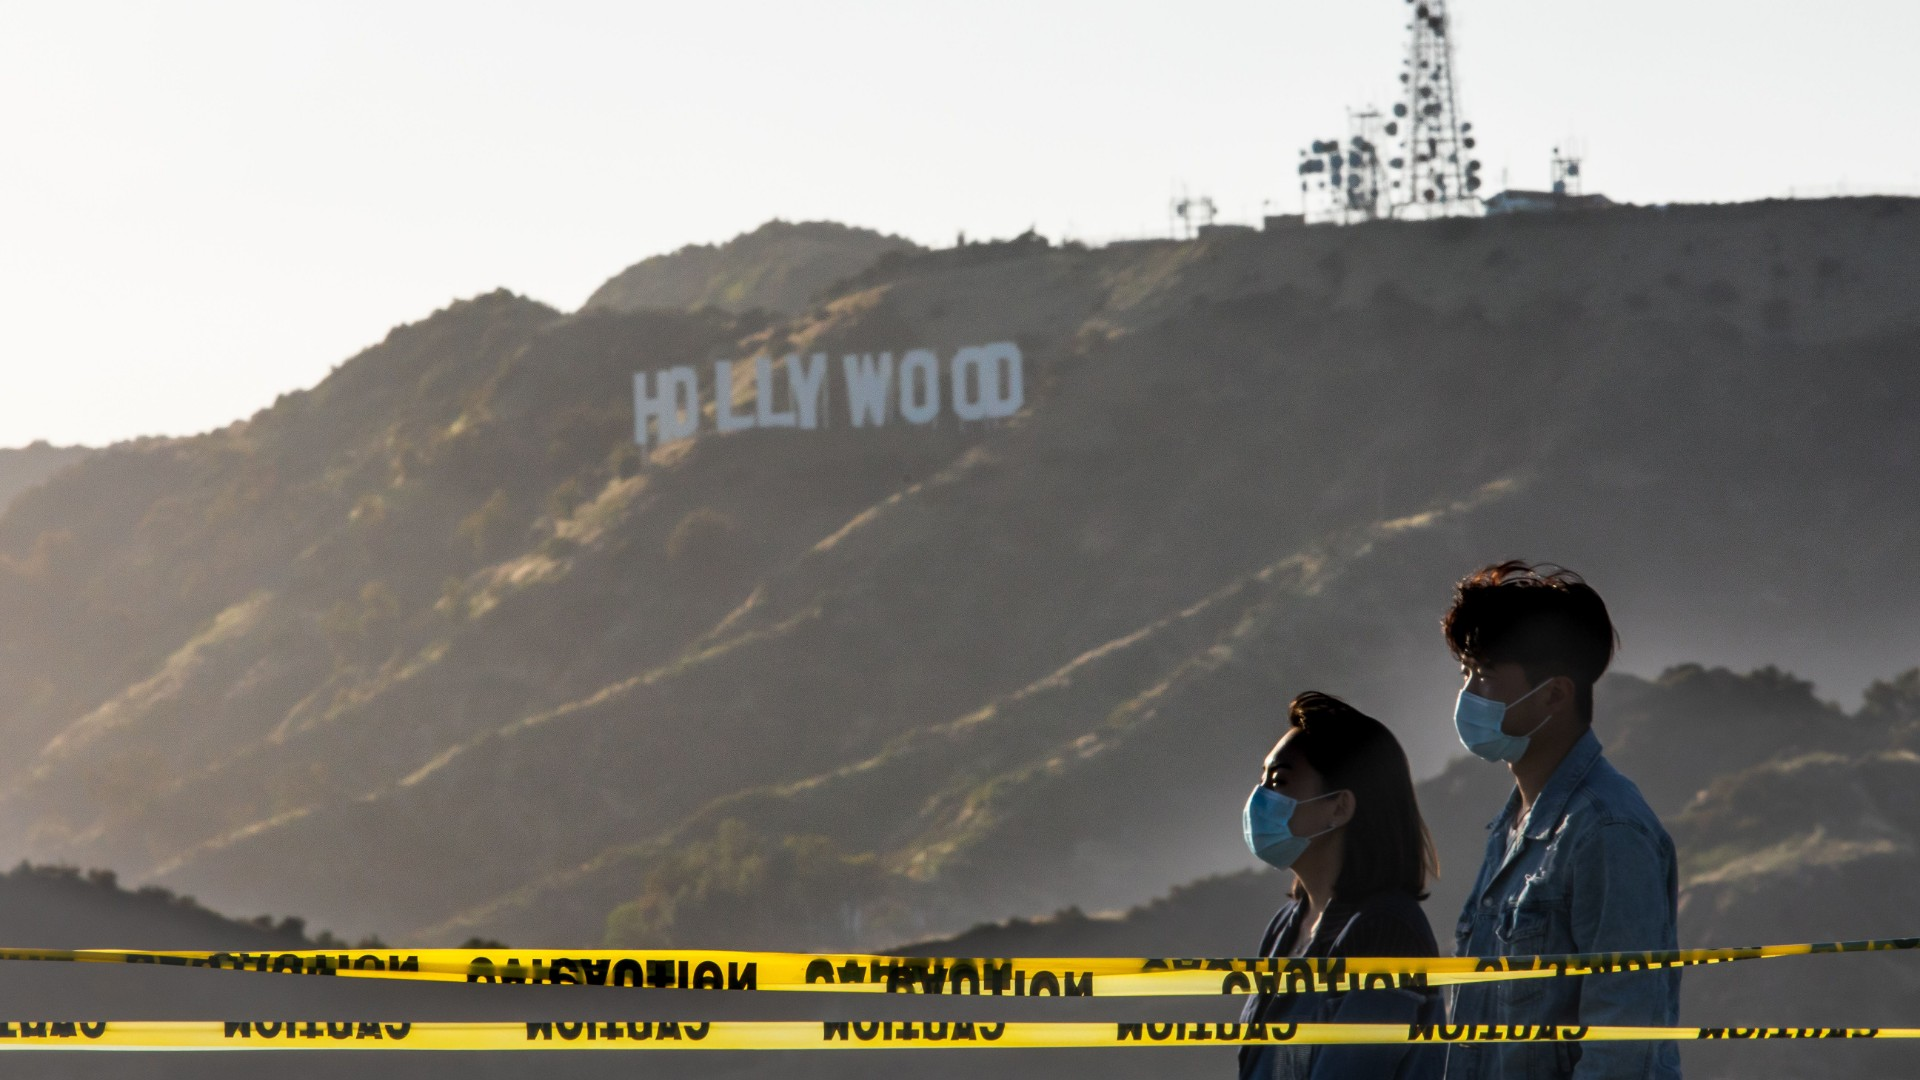 People wearing facemasks walk at the Griffith Observatory with a view of the Hollywood sign at the start of Memorial Day holiday weekend amid the novel coronavirus pandemic in Los Angeles on May 22, 2020. (Apu Gomes/Getty Images)